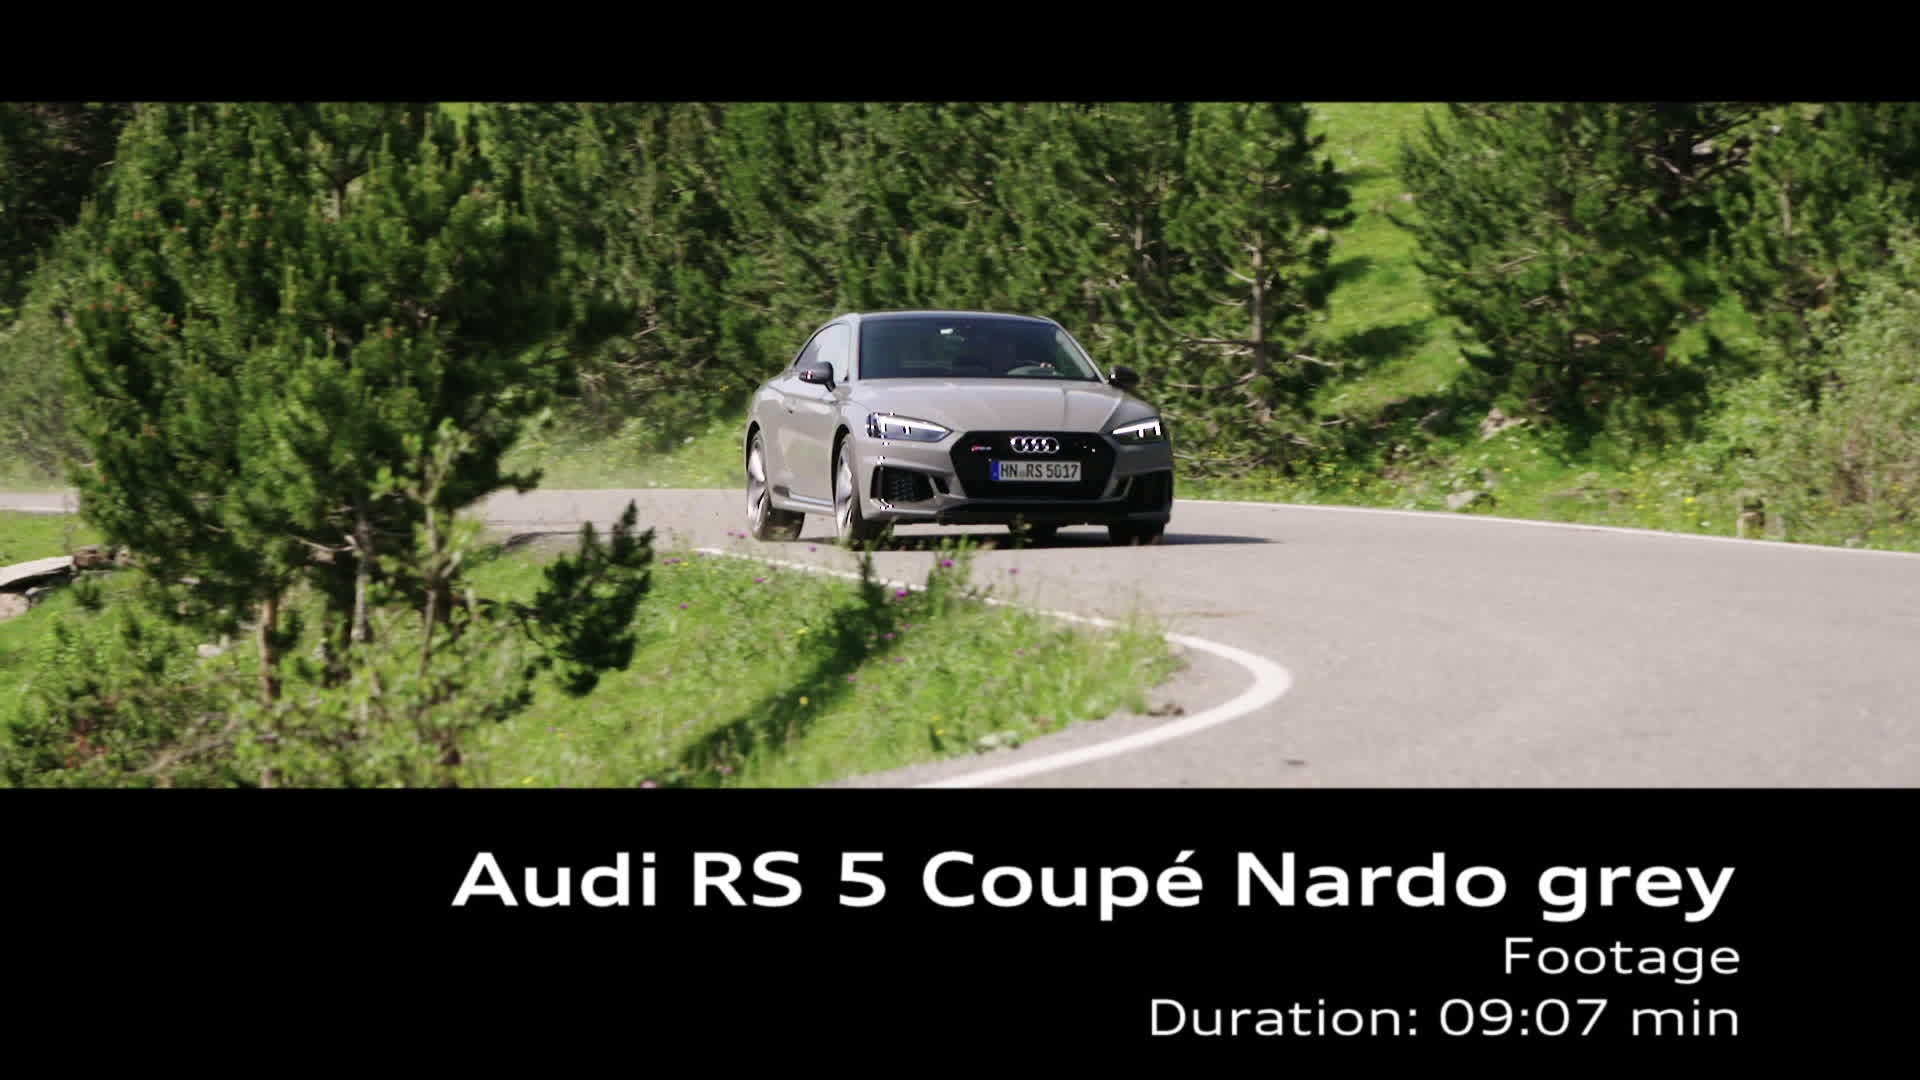 Audi RS 5 Coupé Nardograu - Footage on Location Andorra